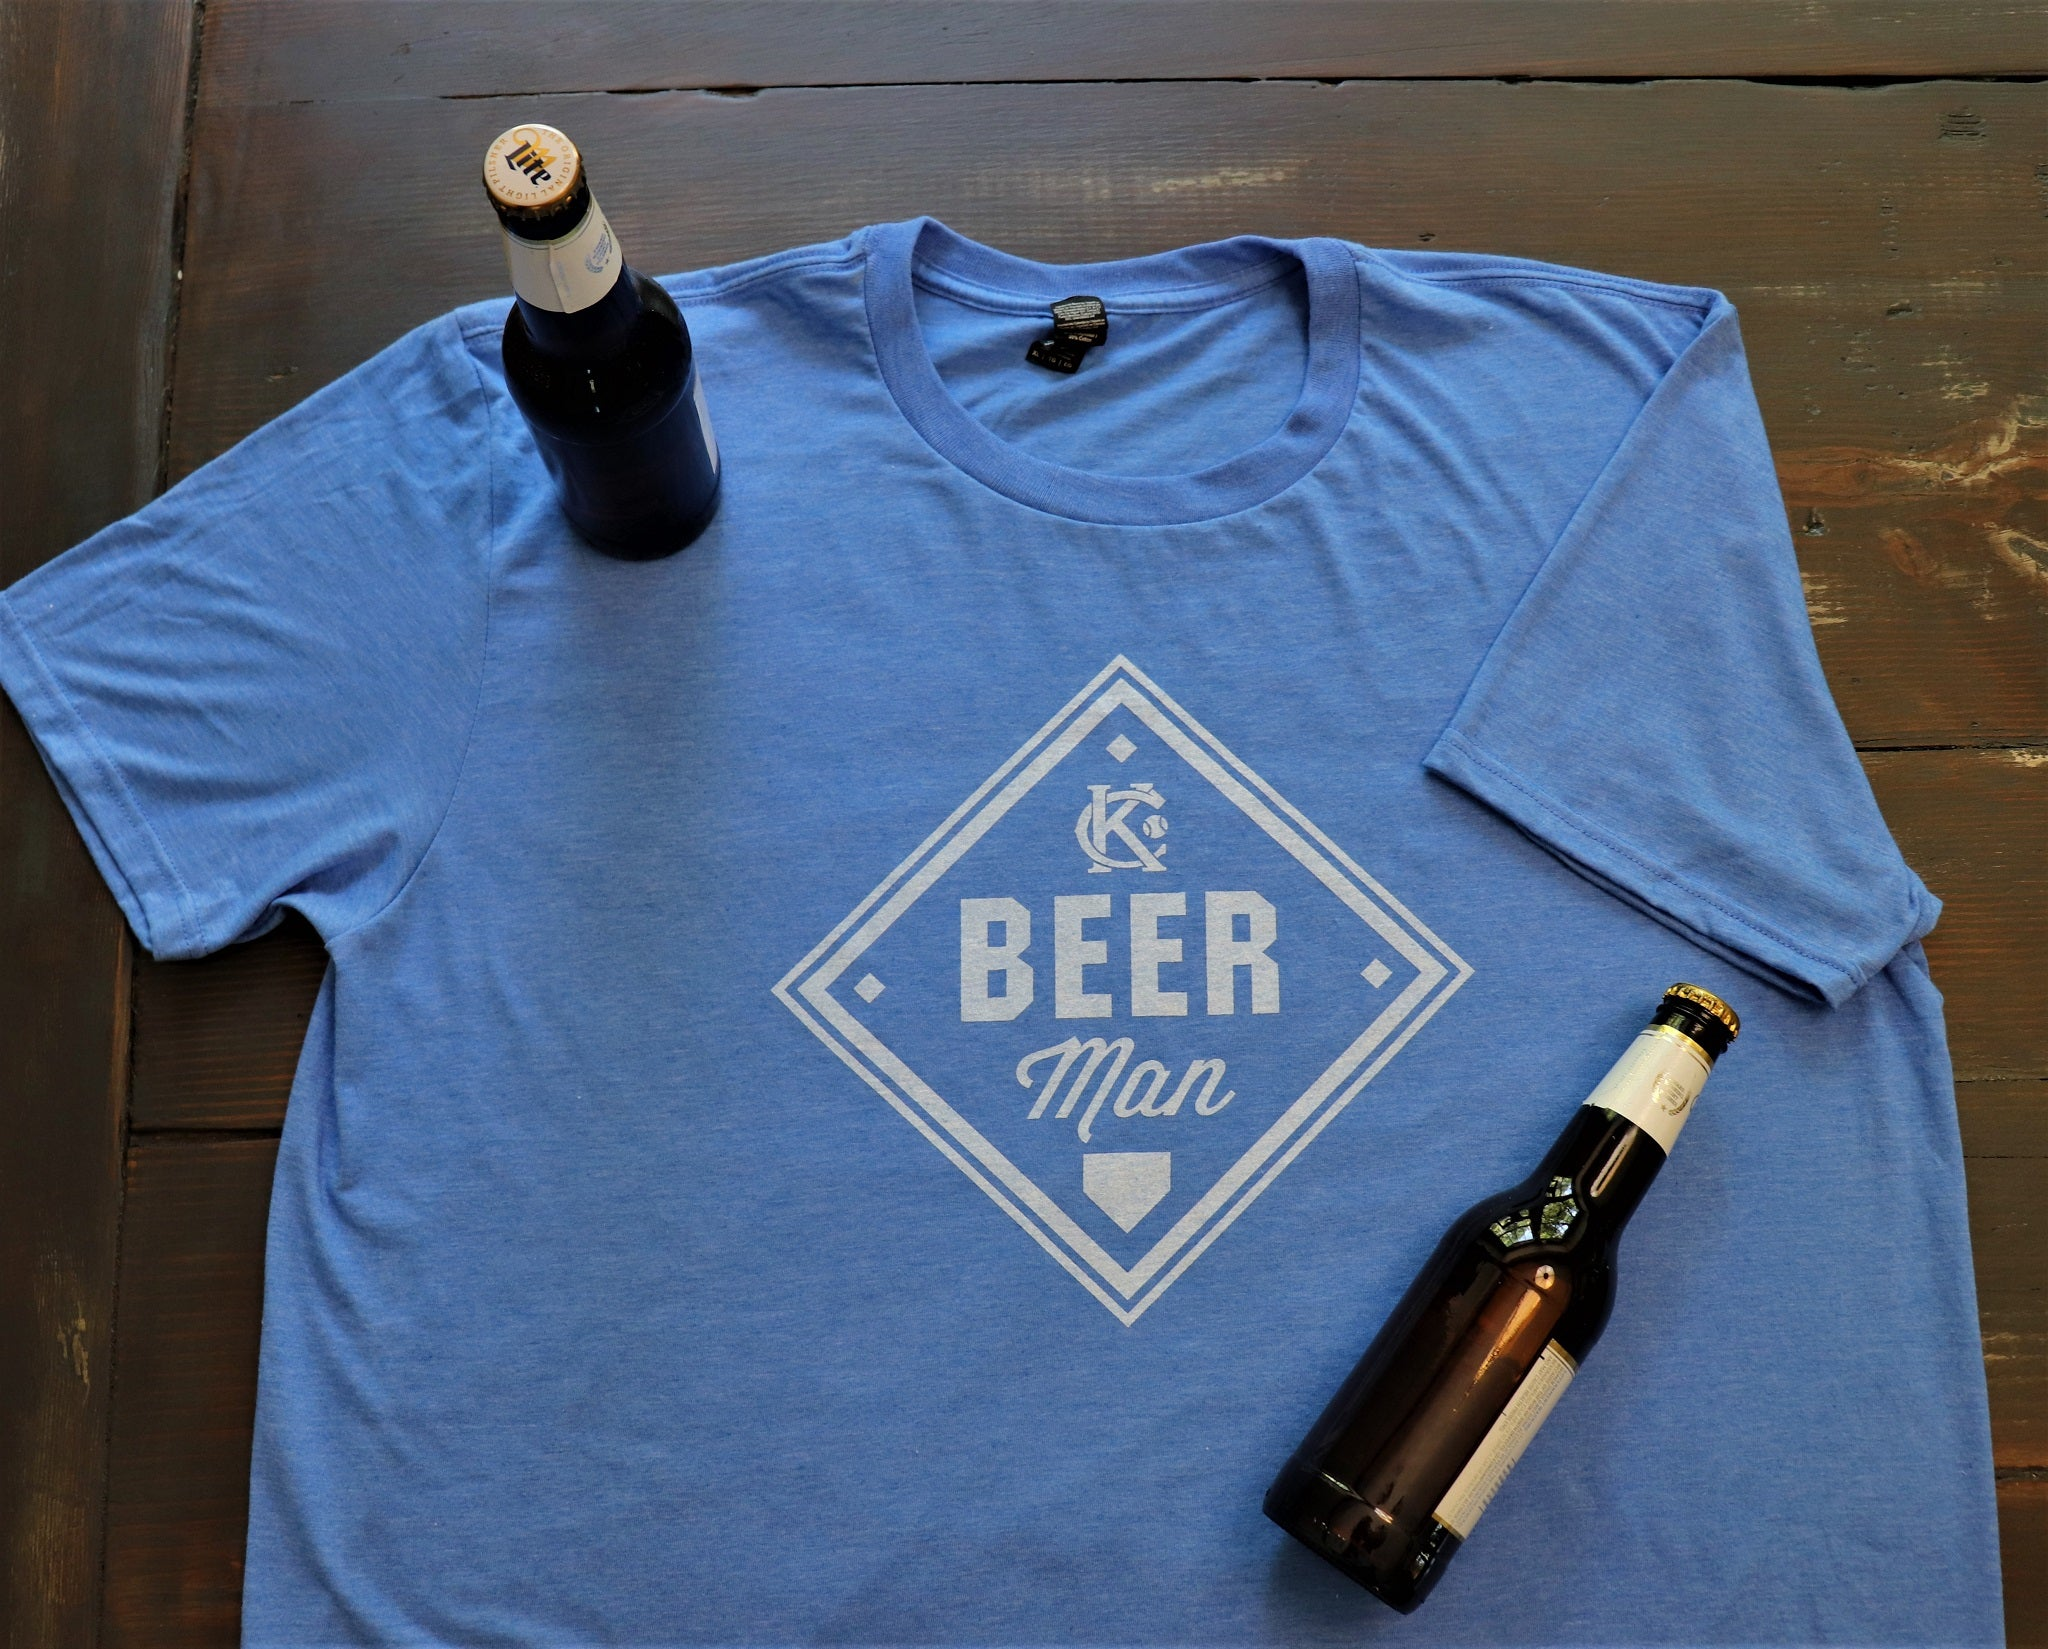 Vintage Kansas City soft style heather blue unisex short sleeve t-shirt featuring the vintage KC logo and a baseball diamond with Beer Man printed in white print across the chest.  Pictured with bottled beers - Dalton Ink